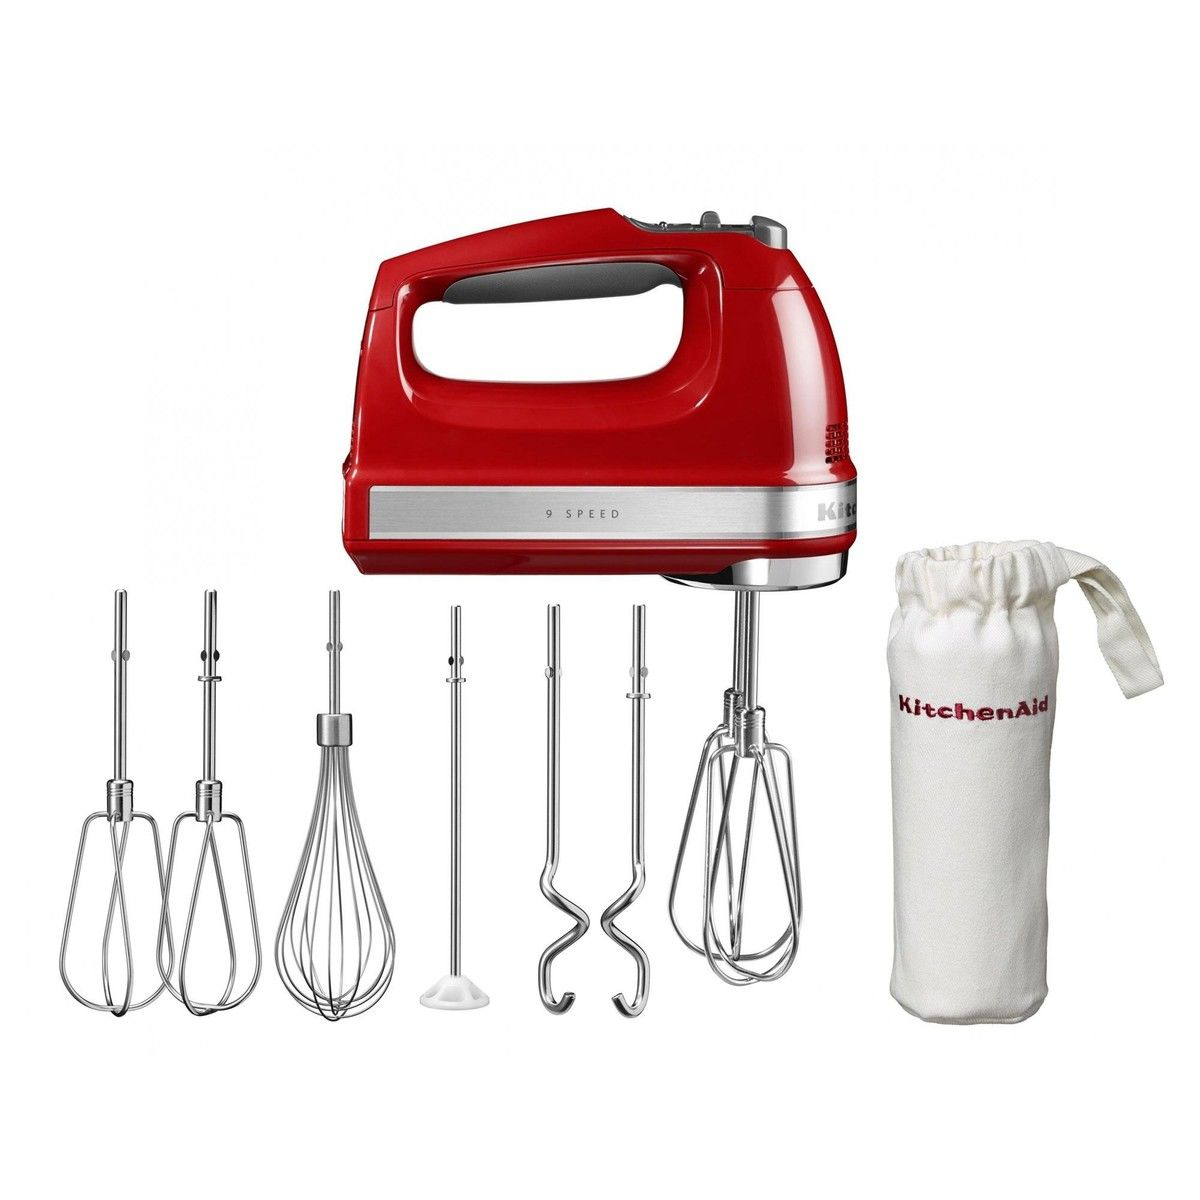 Kitchenaid 5khm9212 hand mixer kitchenaid for Kitchenaid hand mixer